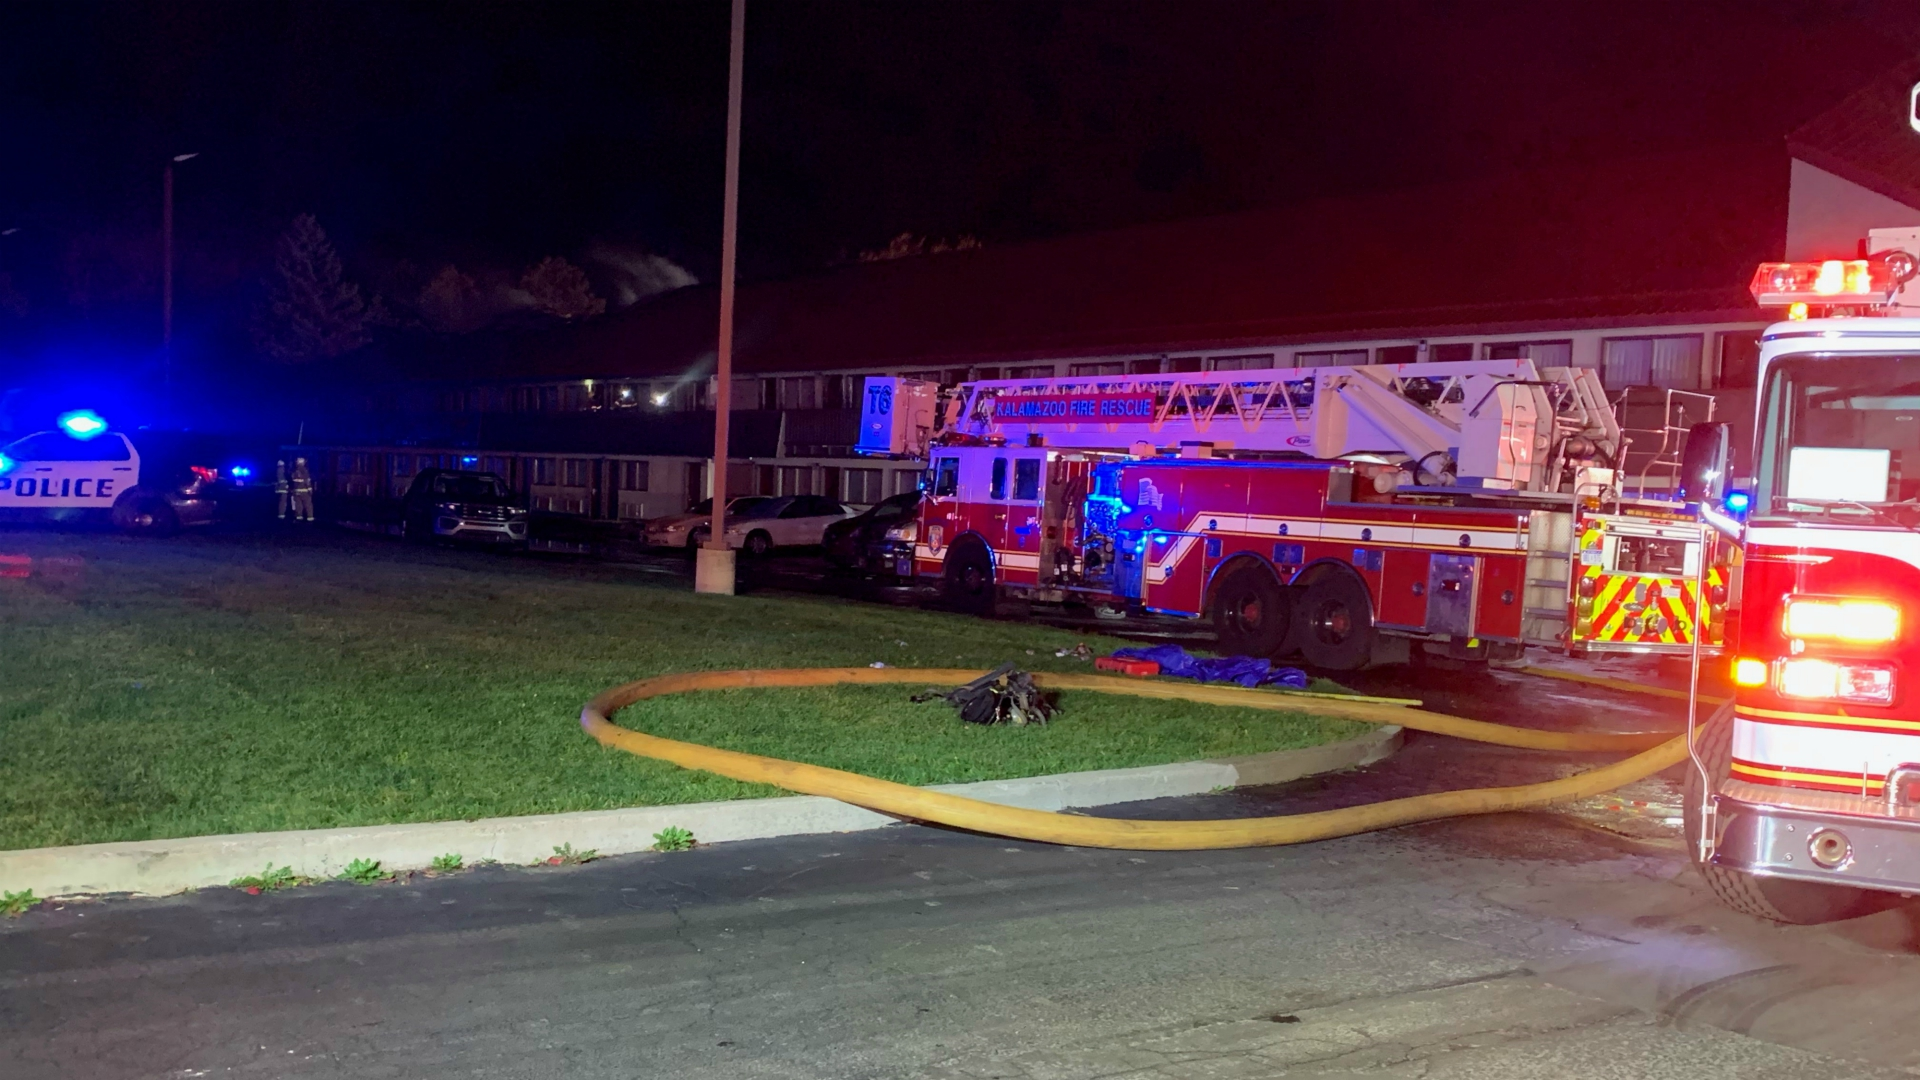 Crews battle fire at Red Rood Inn in Kalamazoo on Oct. 23, 2020.